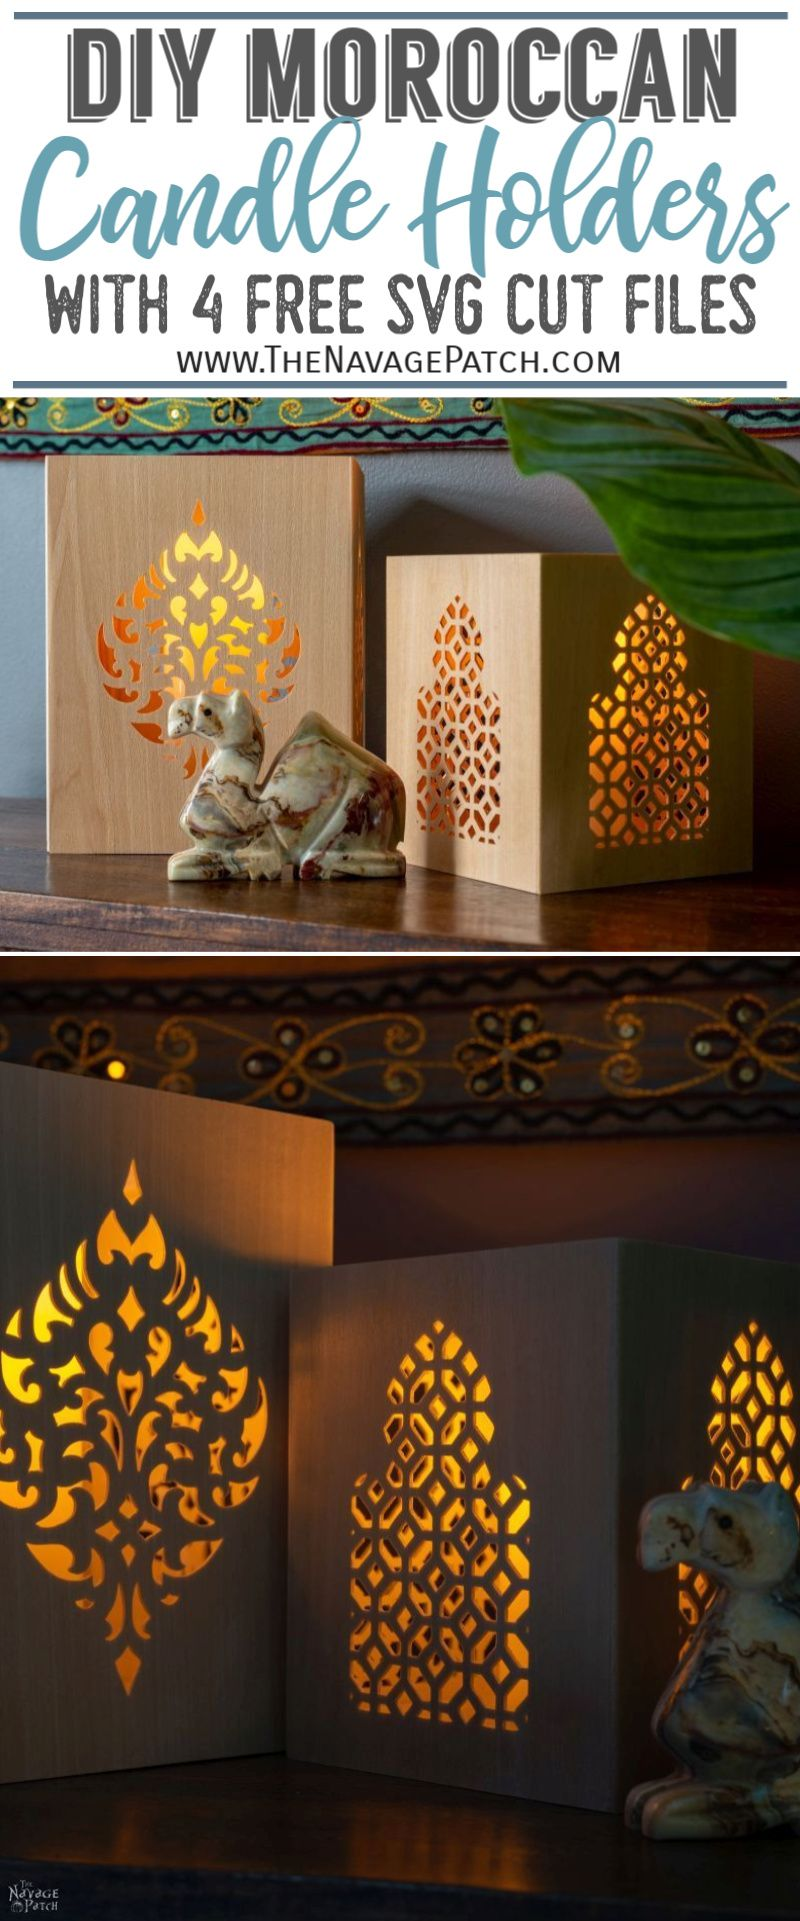 DIY Moroccan Candle Holders pin image | TheNavagePatch.com